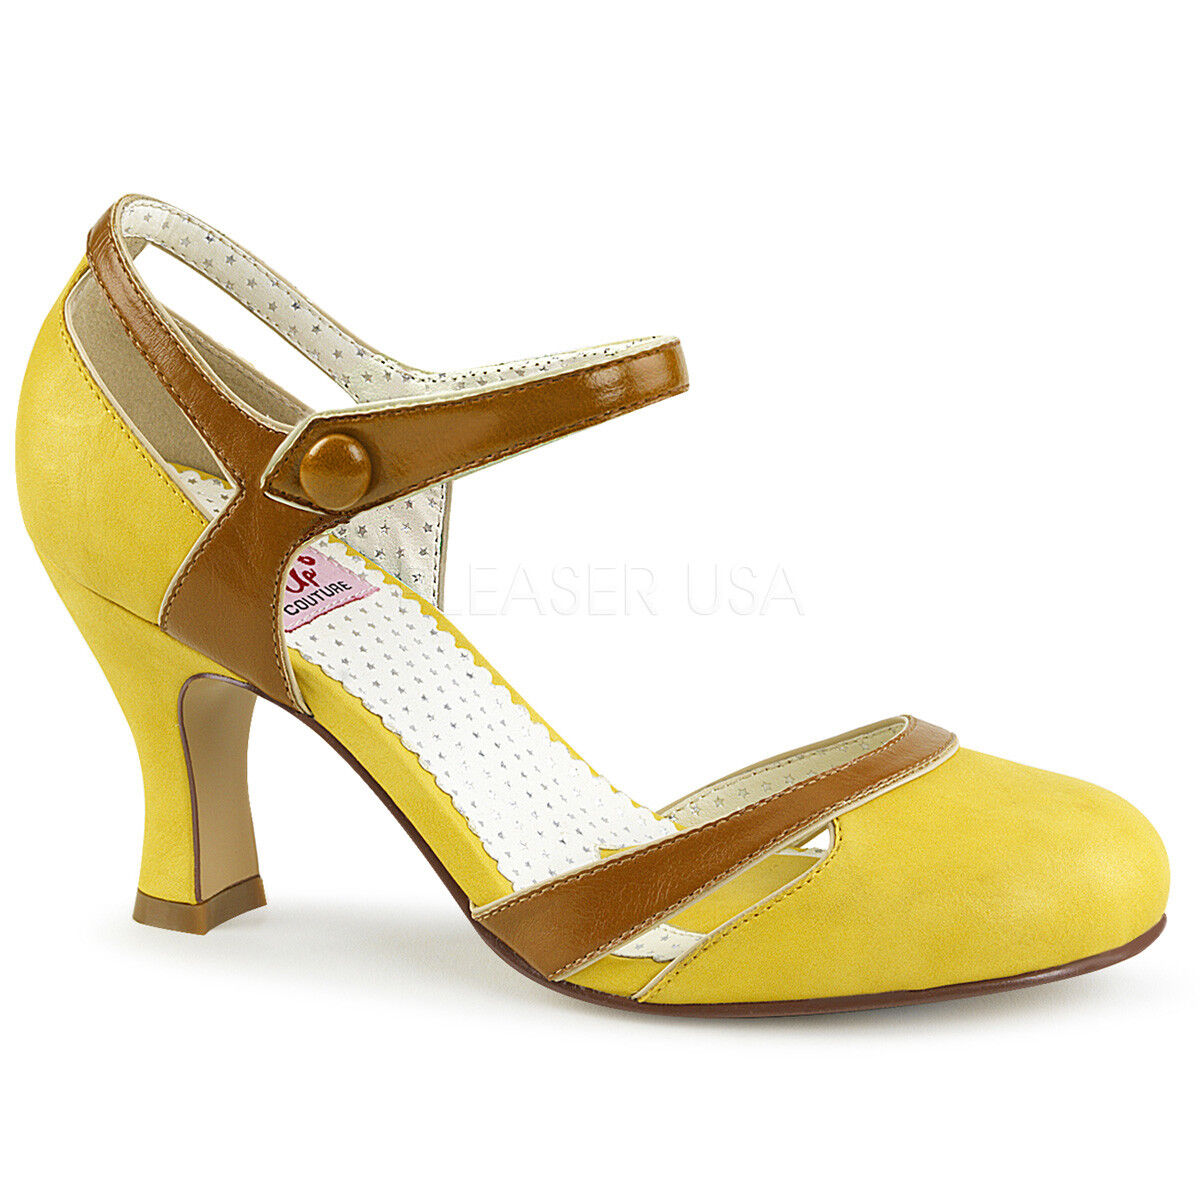 Pin Up Couture FLAPPER-27 Women's Yellow-Tan Leather Heels Round Toe Pump Sandal